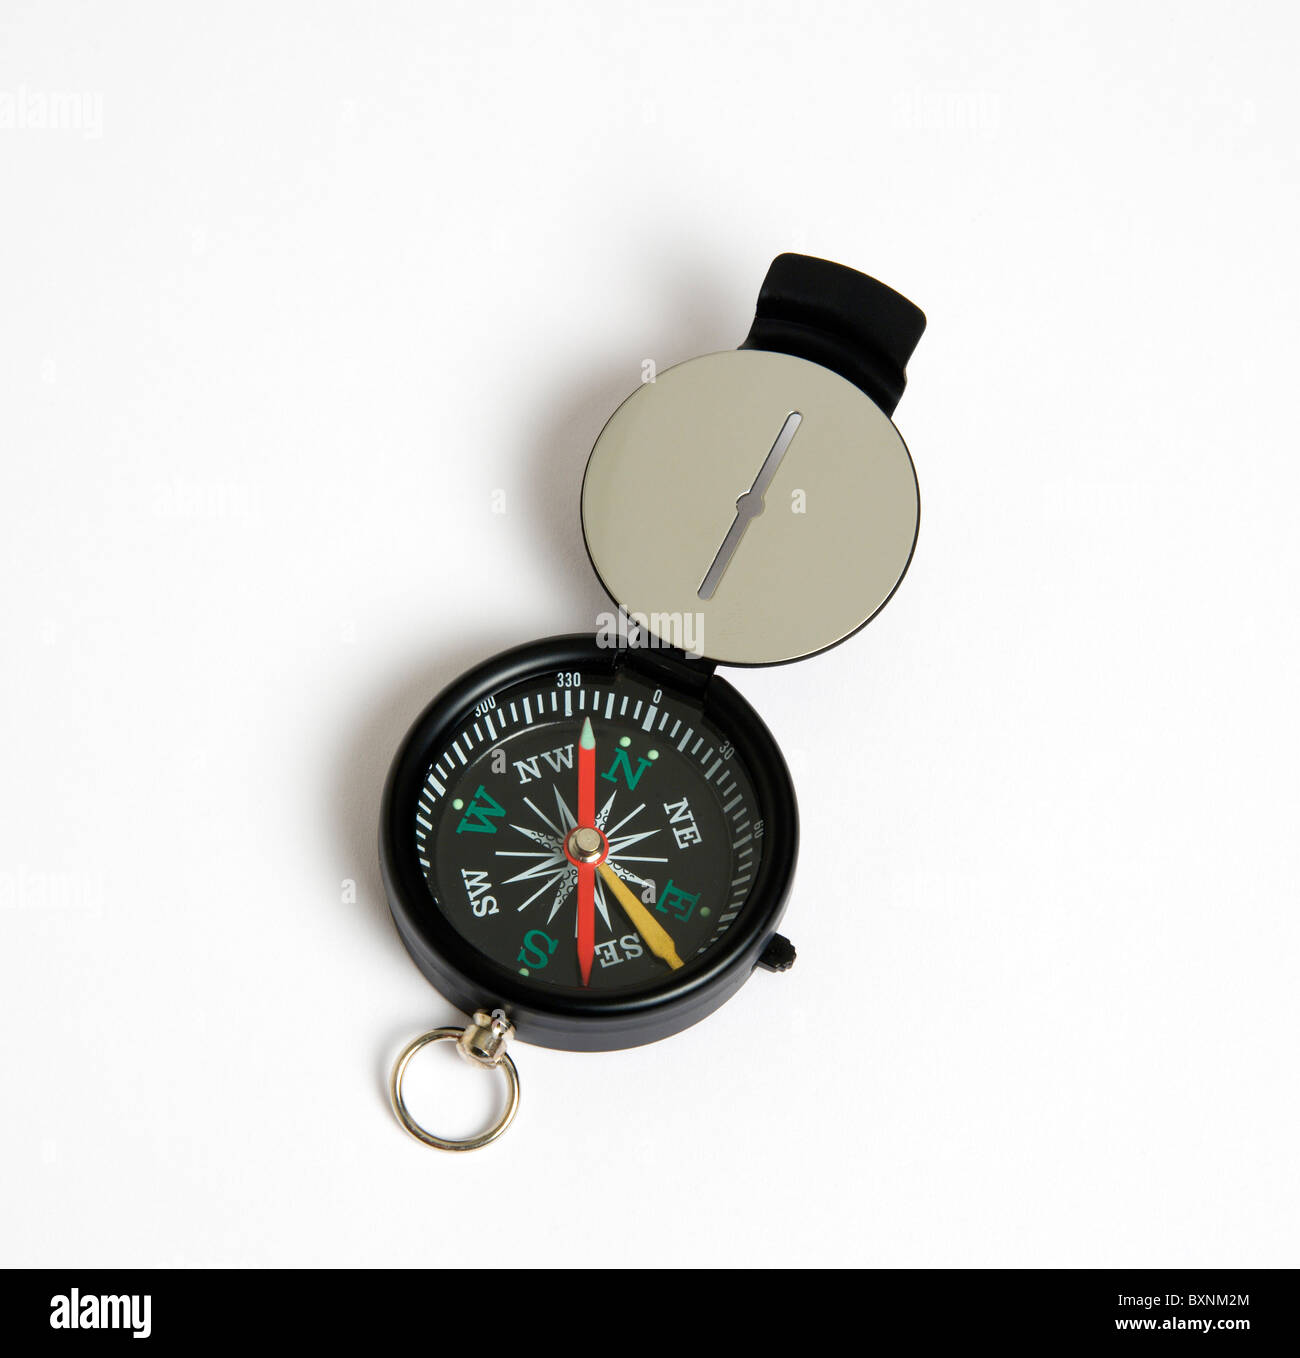 Travel, Navigation, Map Reading, Sighting compass with dial pointing to magnetic north on a white background. Stock Photo